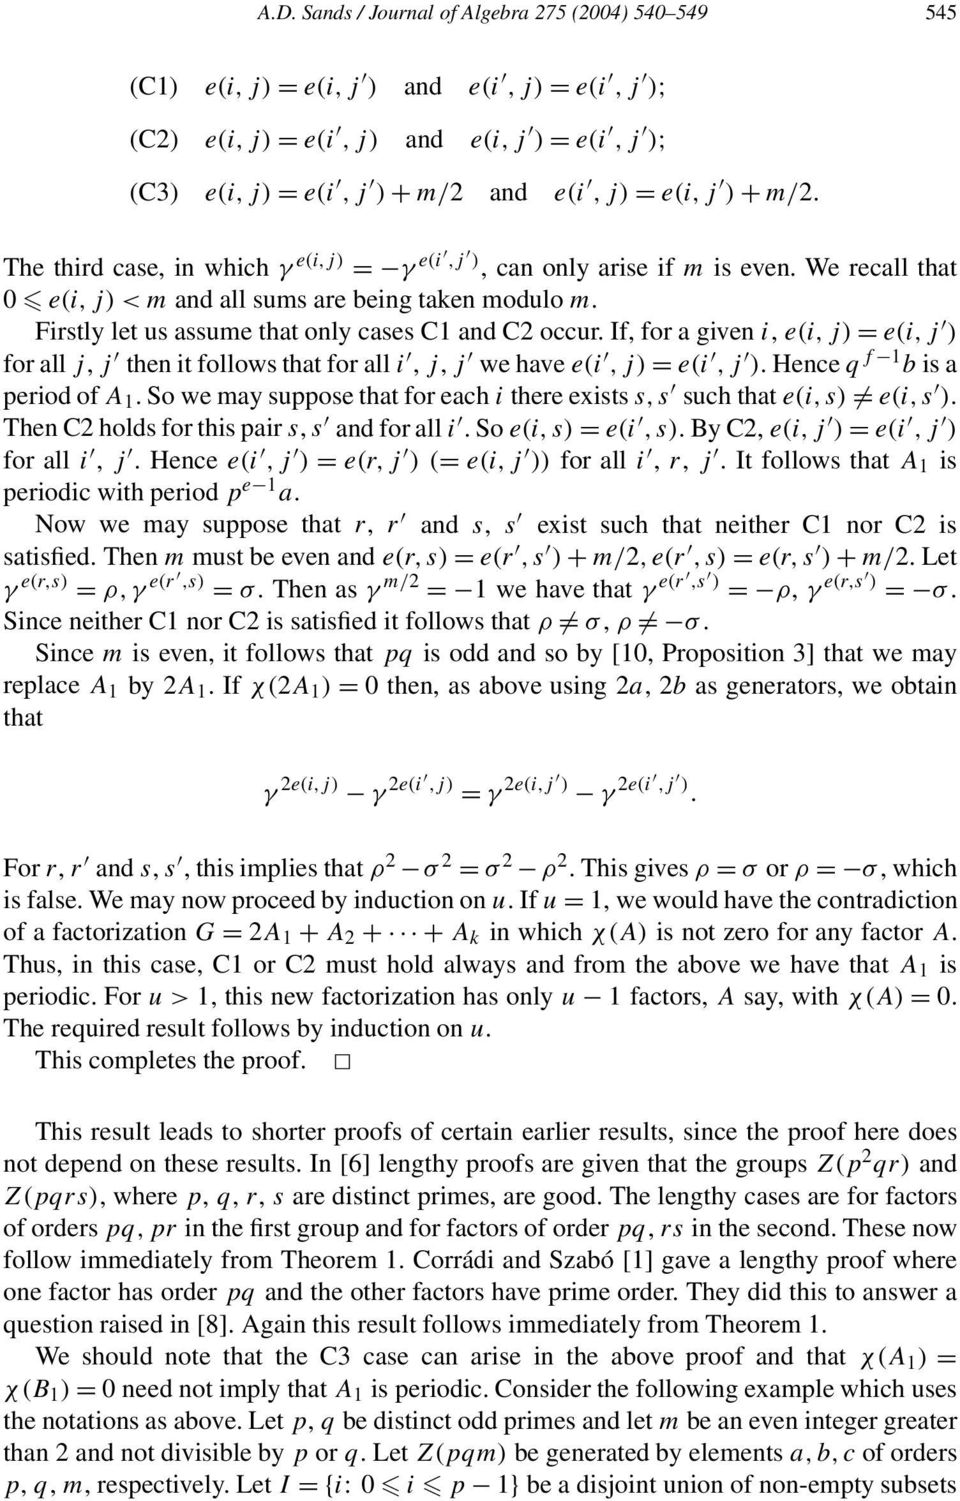 If, for a given i, e(i,j) = e(i,j ) for all j, j then it follows that for all i, j, j we have e(i,j)= e(i,j ). Hence q f 1 b is a period of A 1.